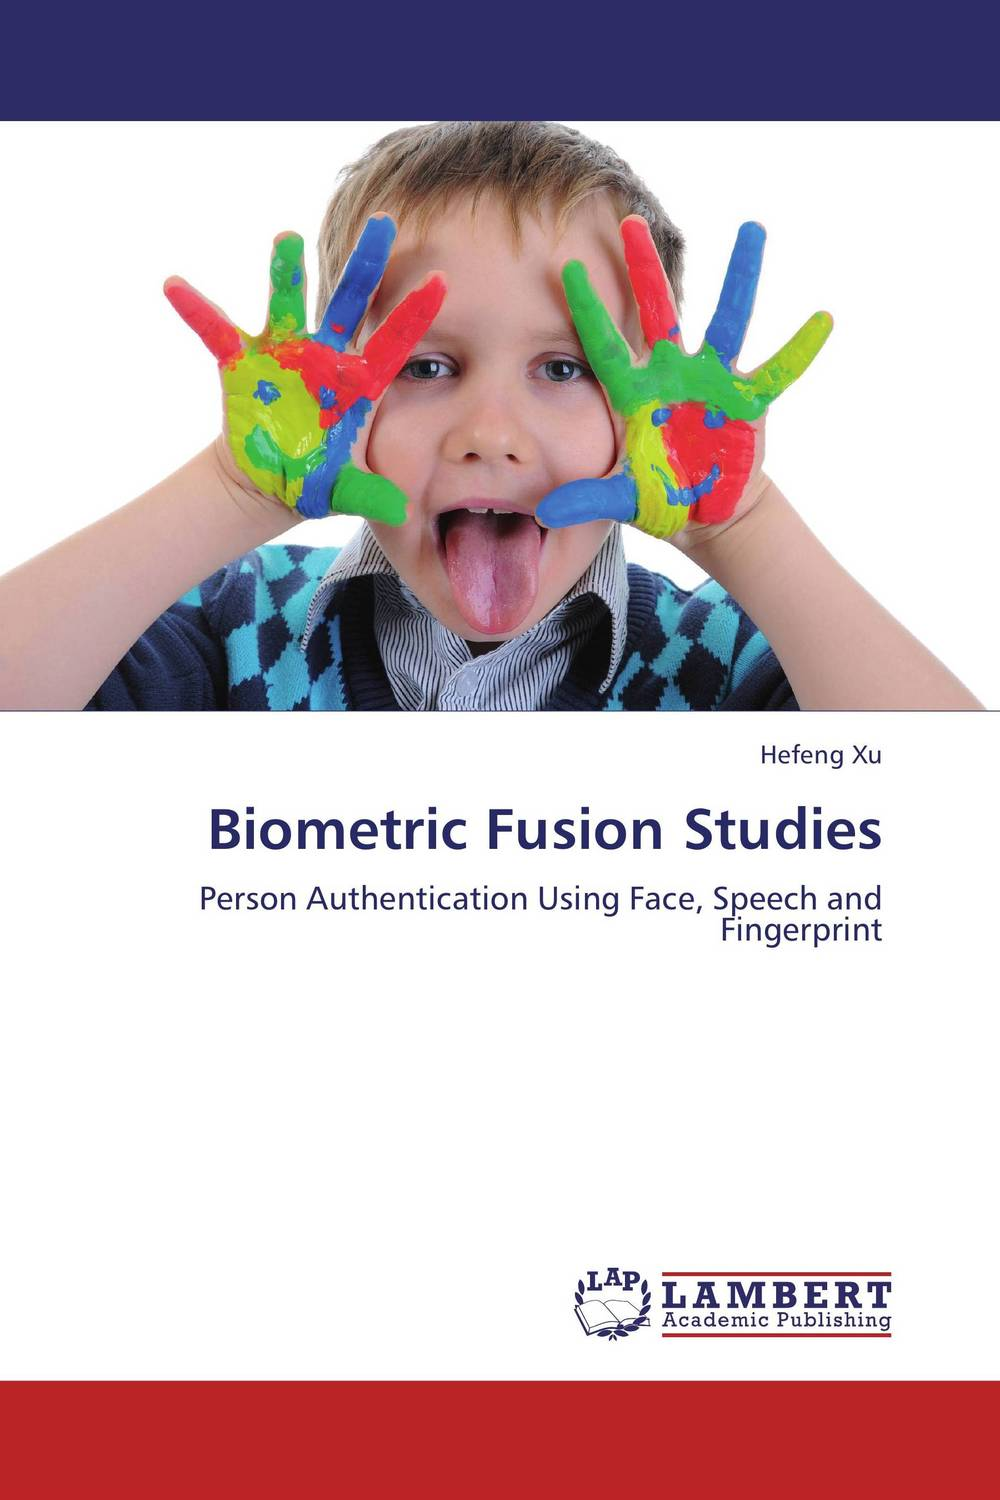 Biometric Fusion Studies belousov a security features of banknotes and other documents methods of authentication manual денежные билеты бланки ценных бумаг и документов